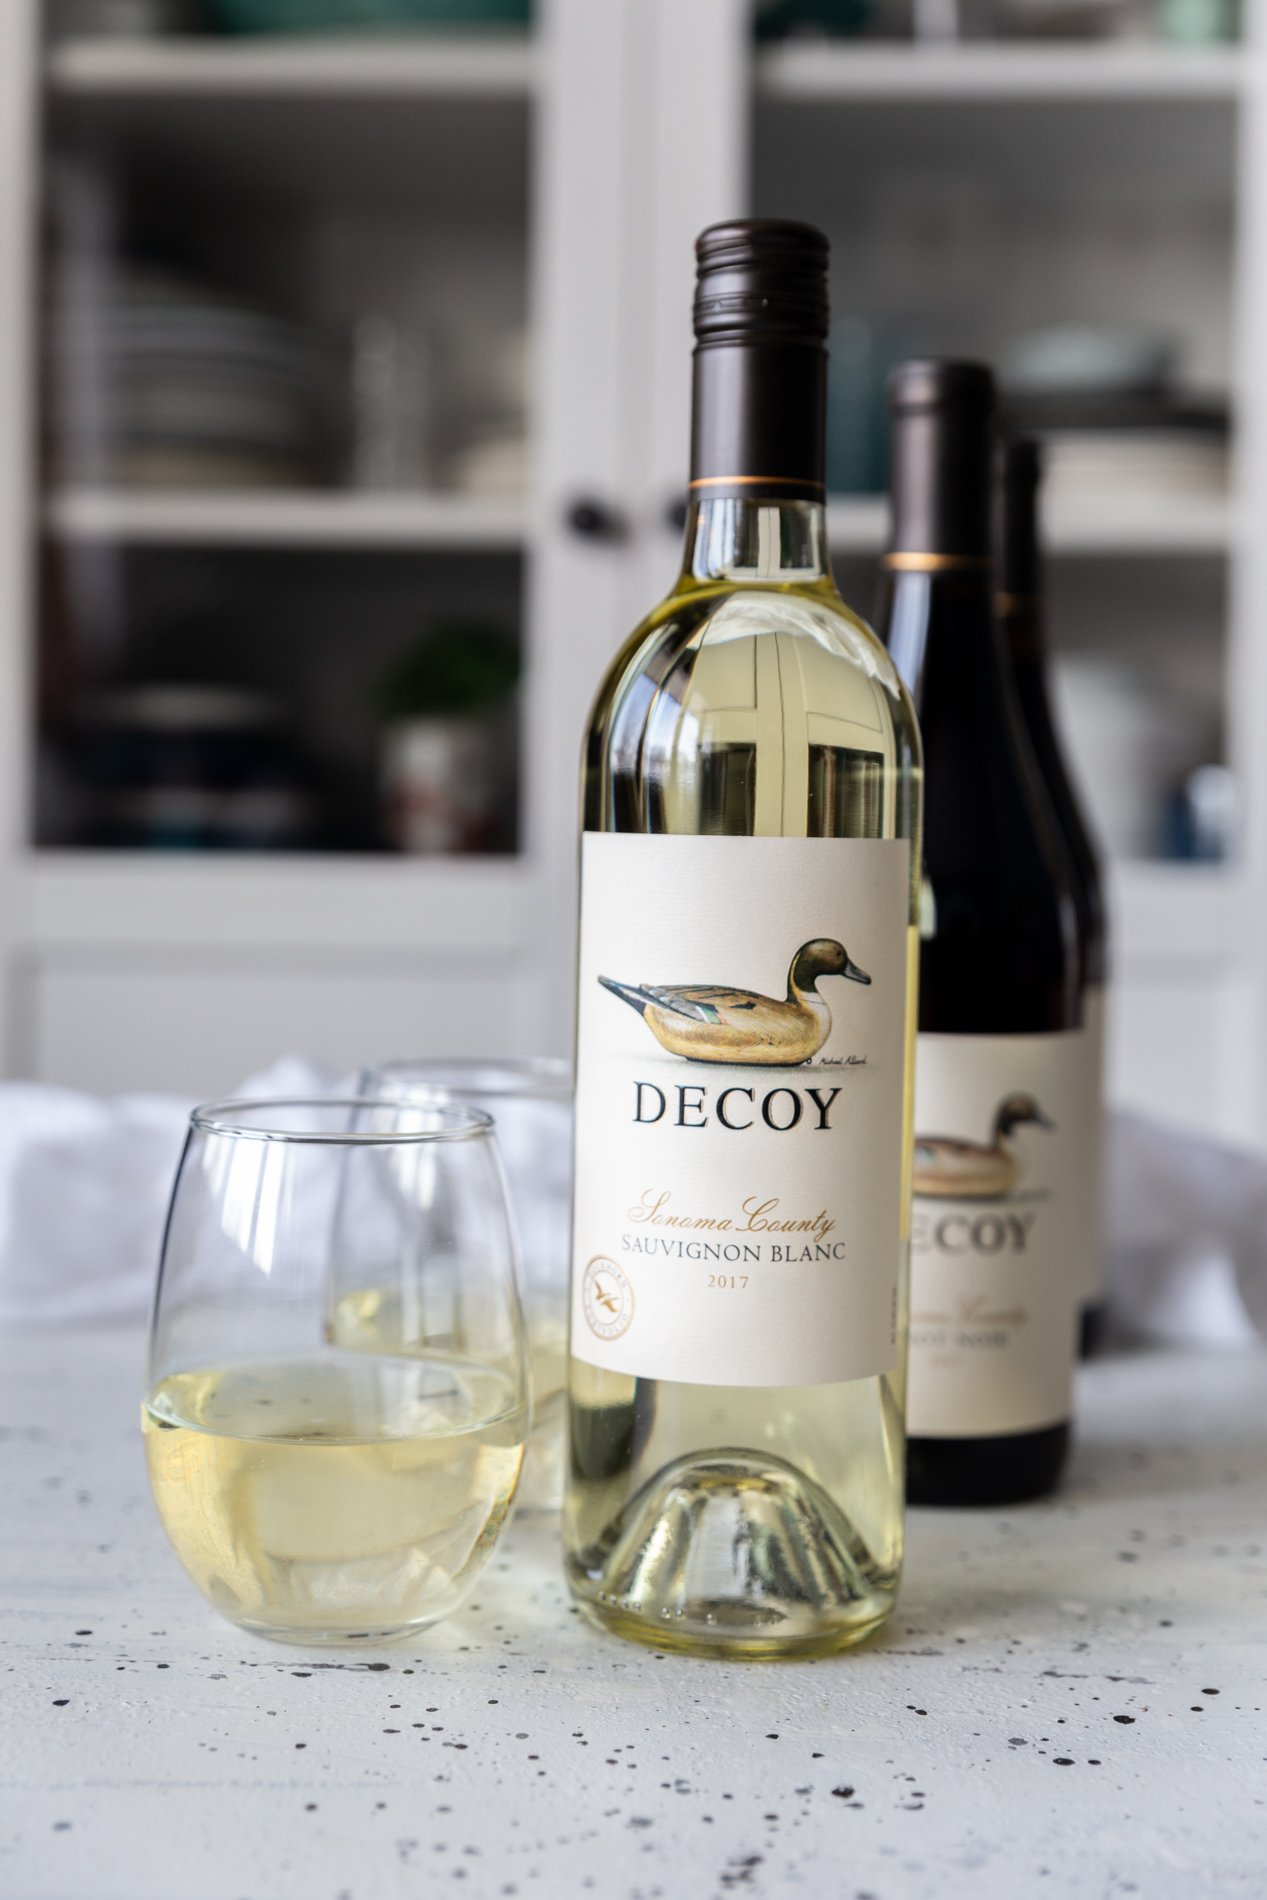 Bottles of Decoy Wine and glasses with wine in them.